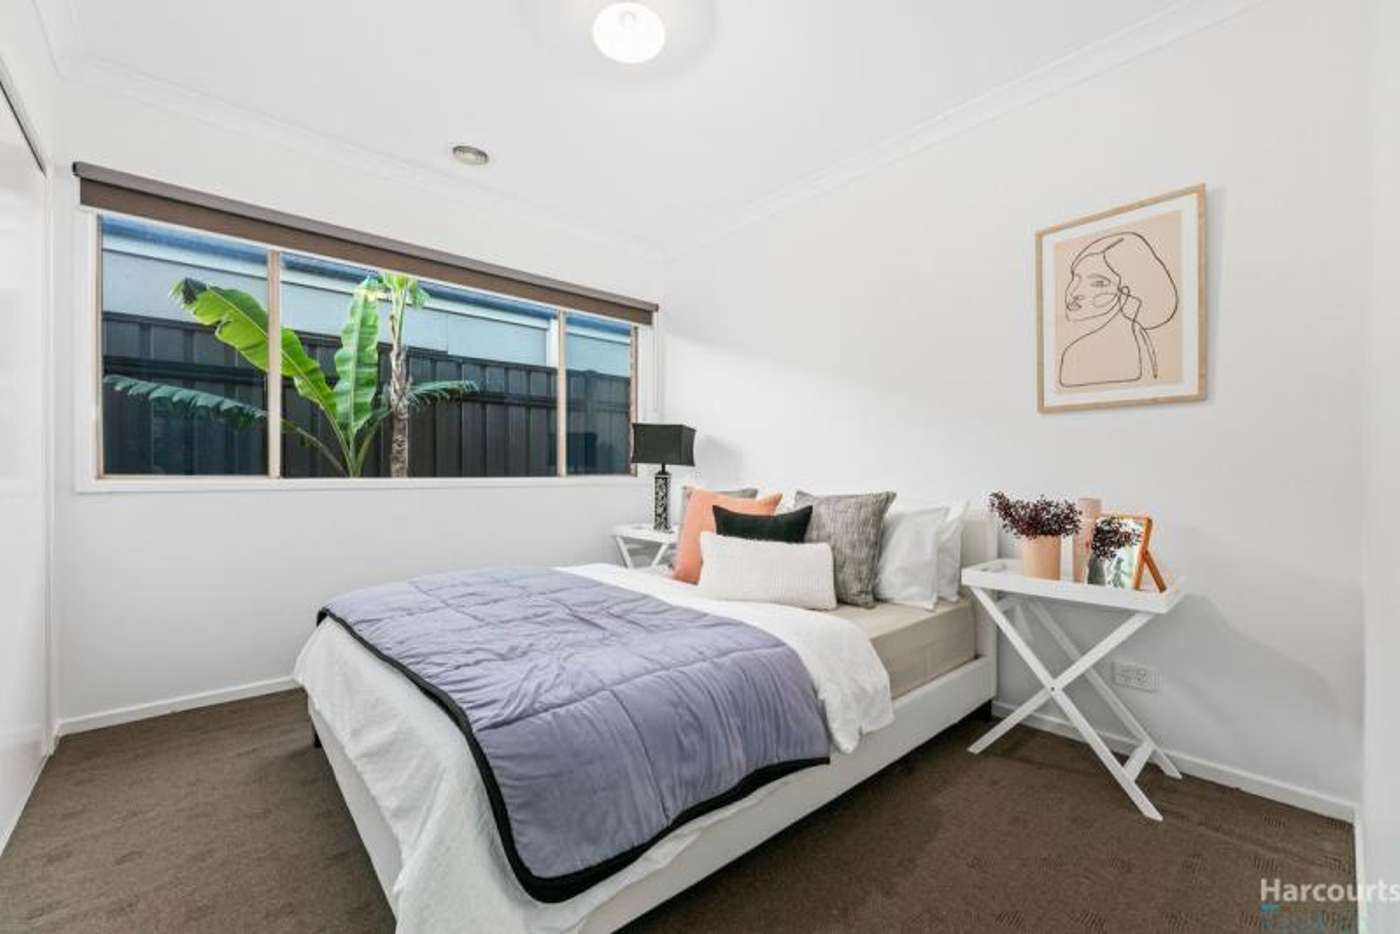 Fifth view of Homely house listing, 32 Brickwood Circuit, Craigieburn VIC 3064